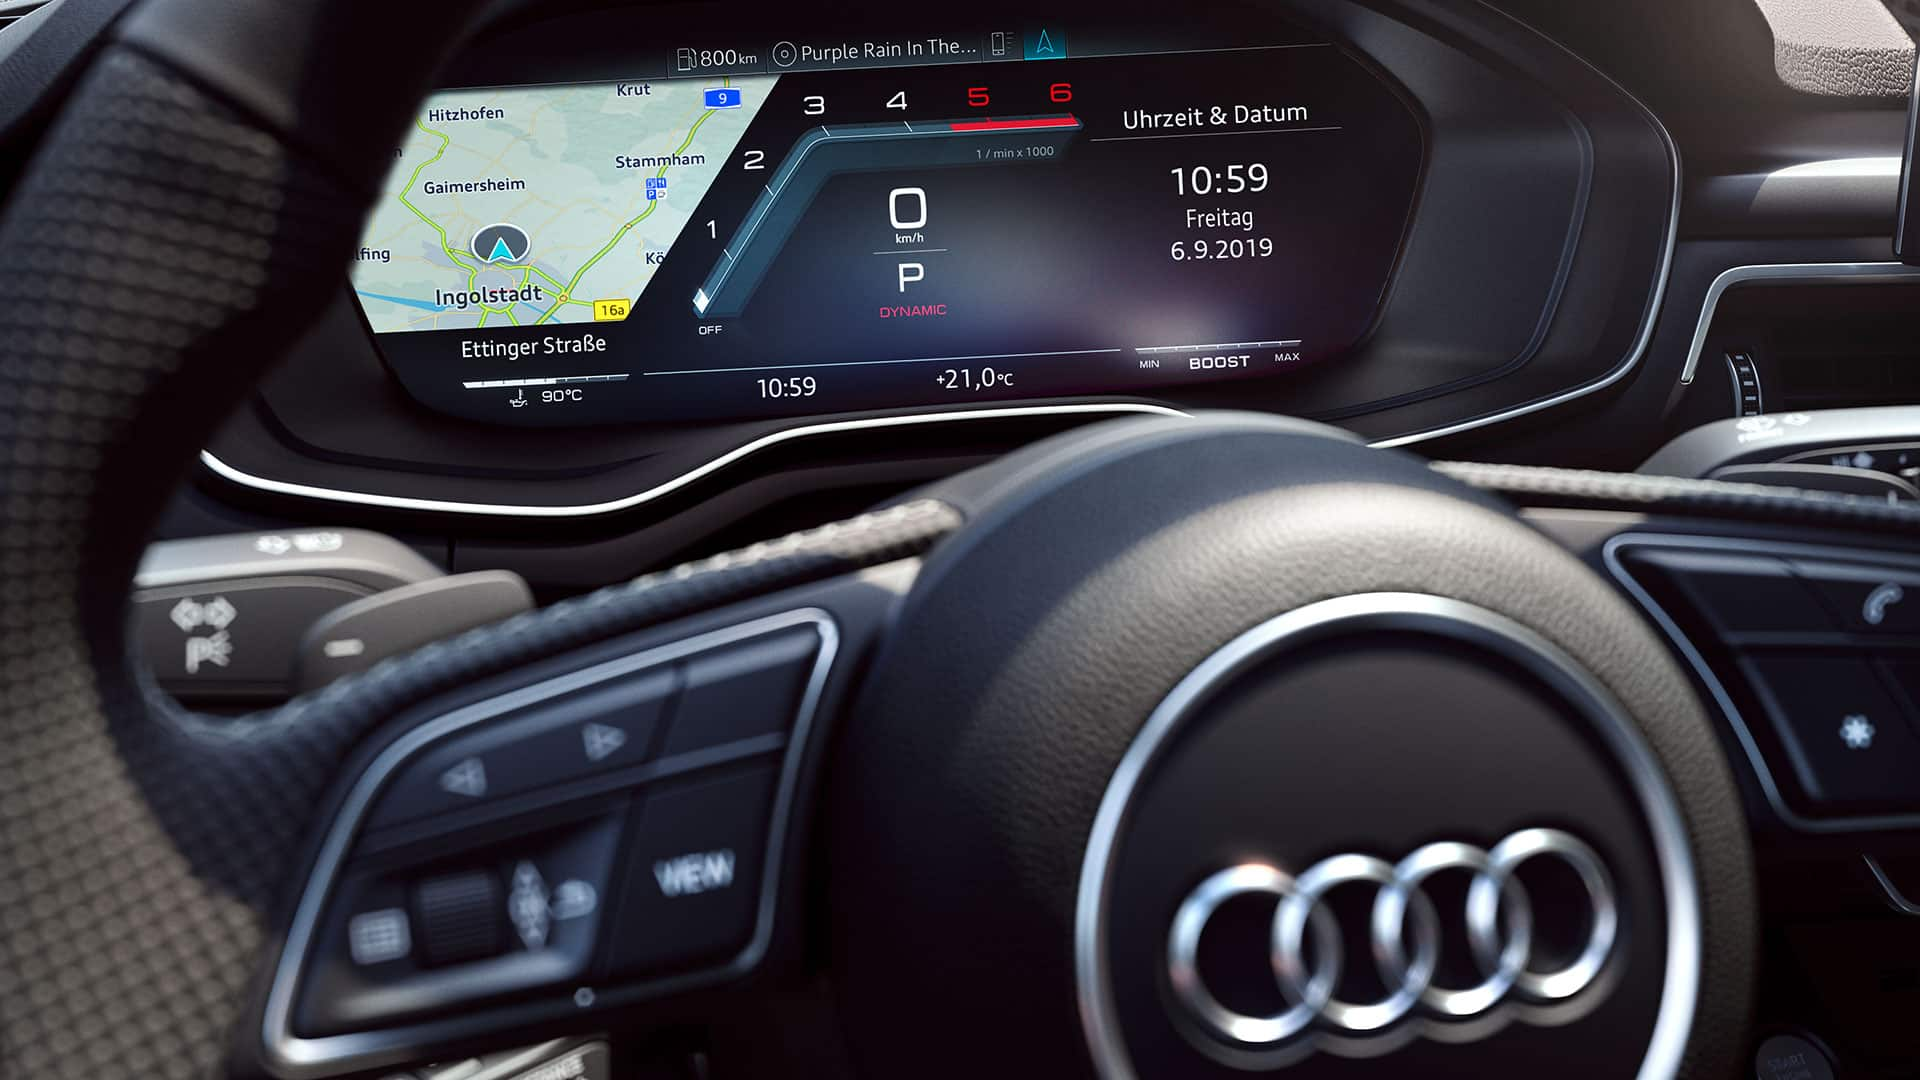 Audi virtual cockpit in the Audi S5 Coupé TDI